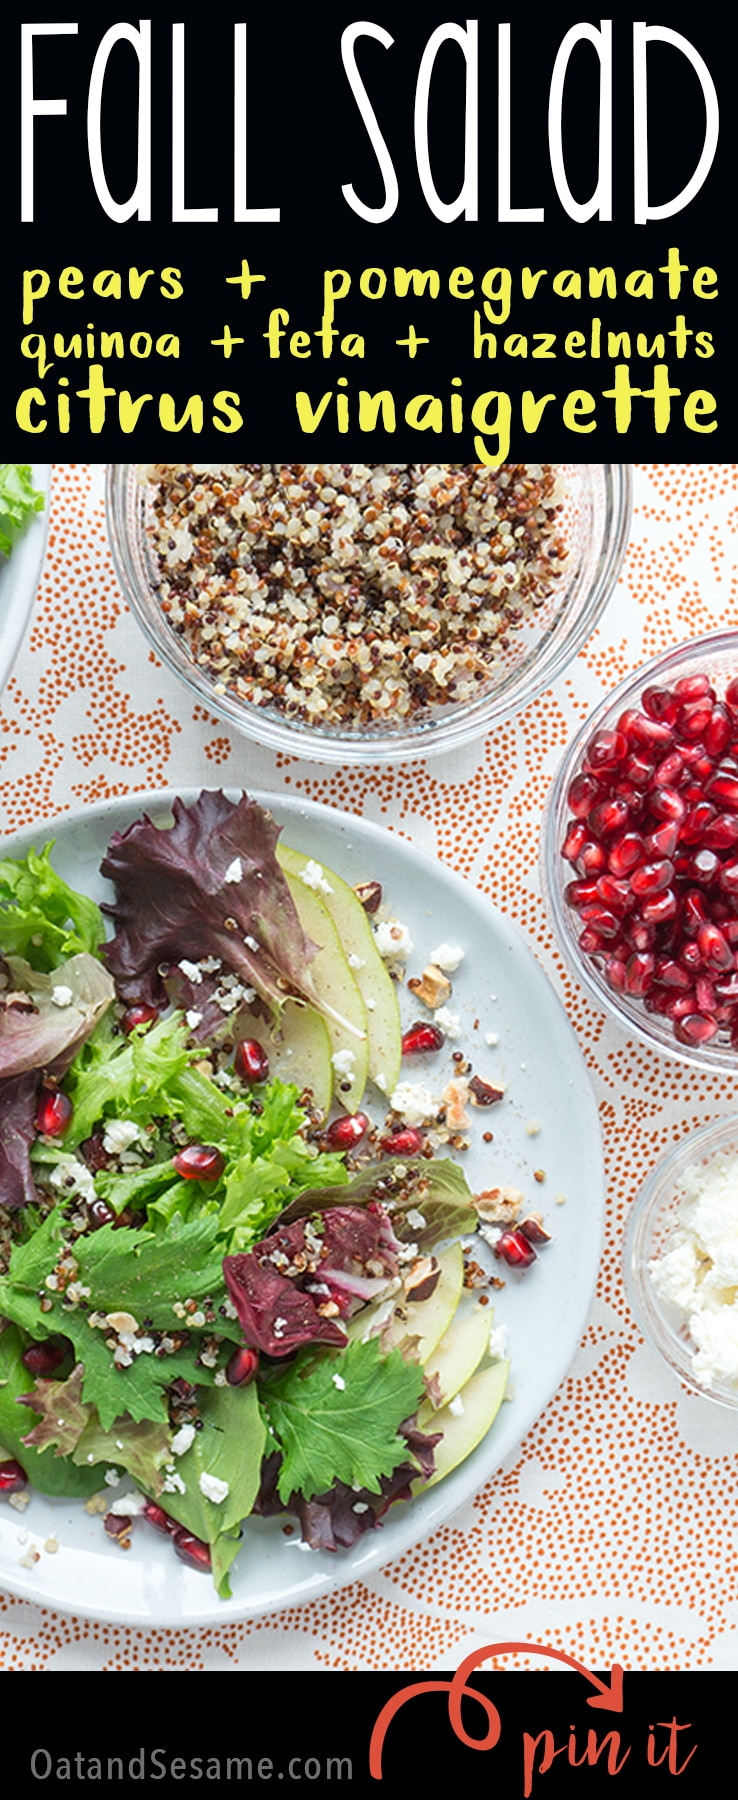 Fall Salad with pear, pomegranate & orange vinaigrette!| #SALAD | #VEGETARIAN | #HEALTHY | #FALL | #THANKSGIVING | #Recipes at OatandSesame.com